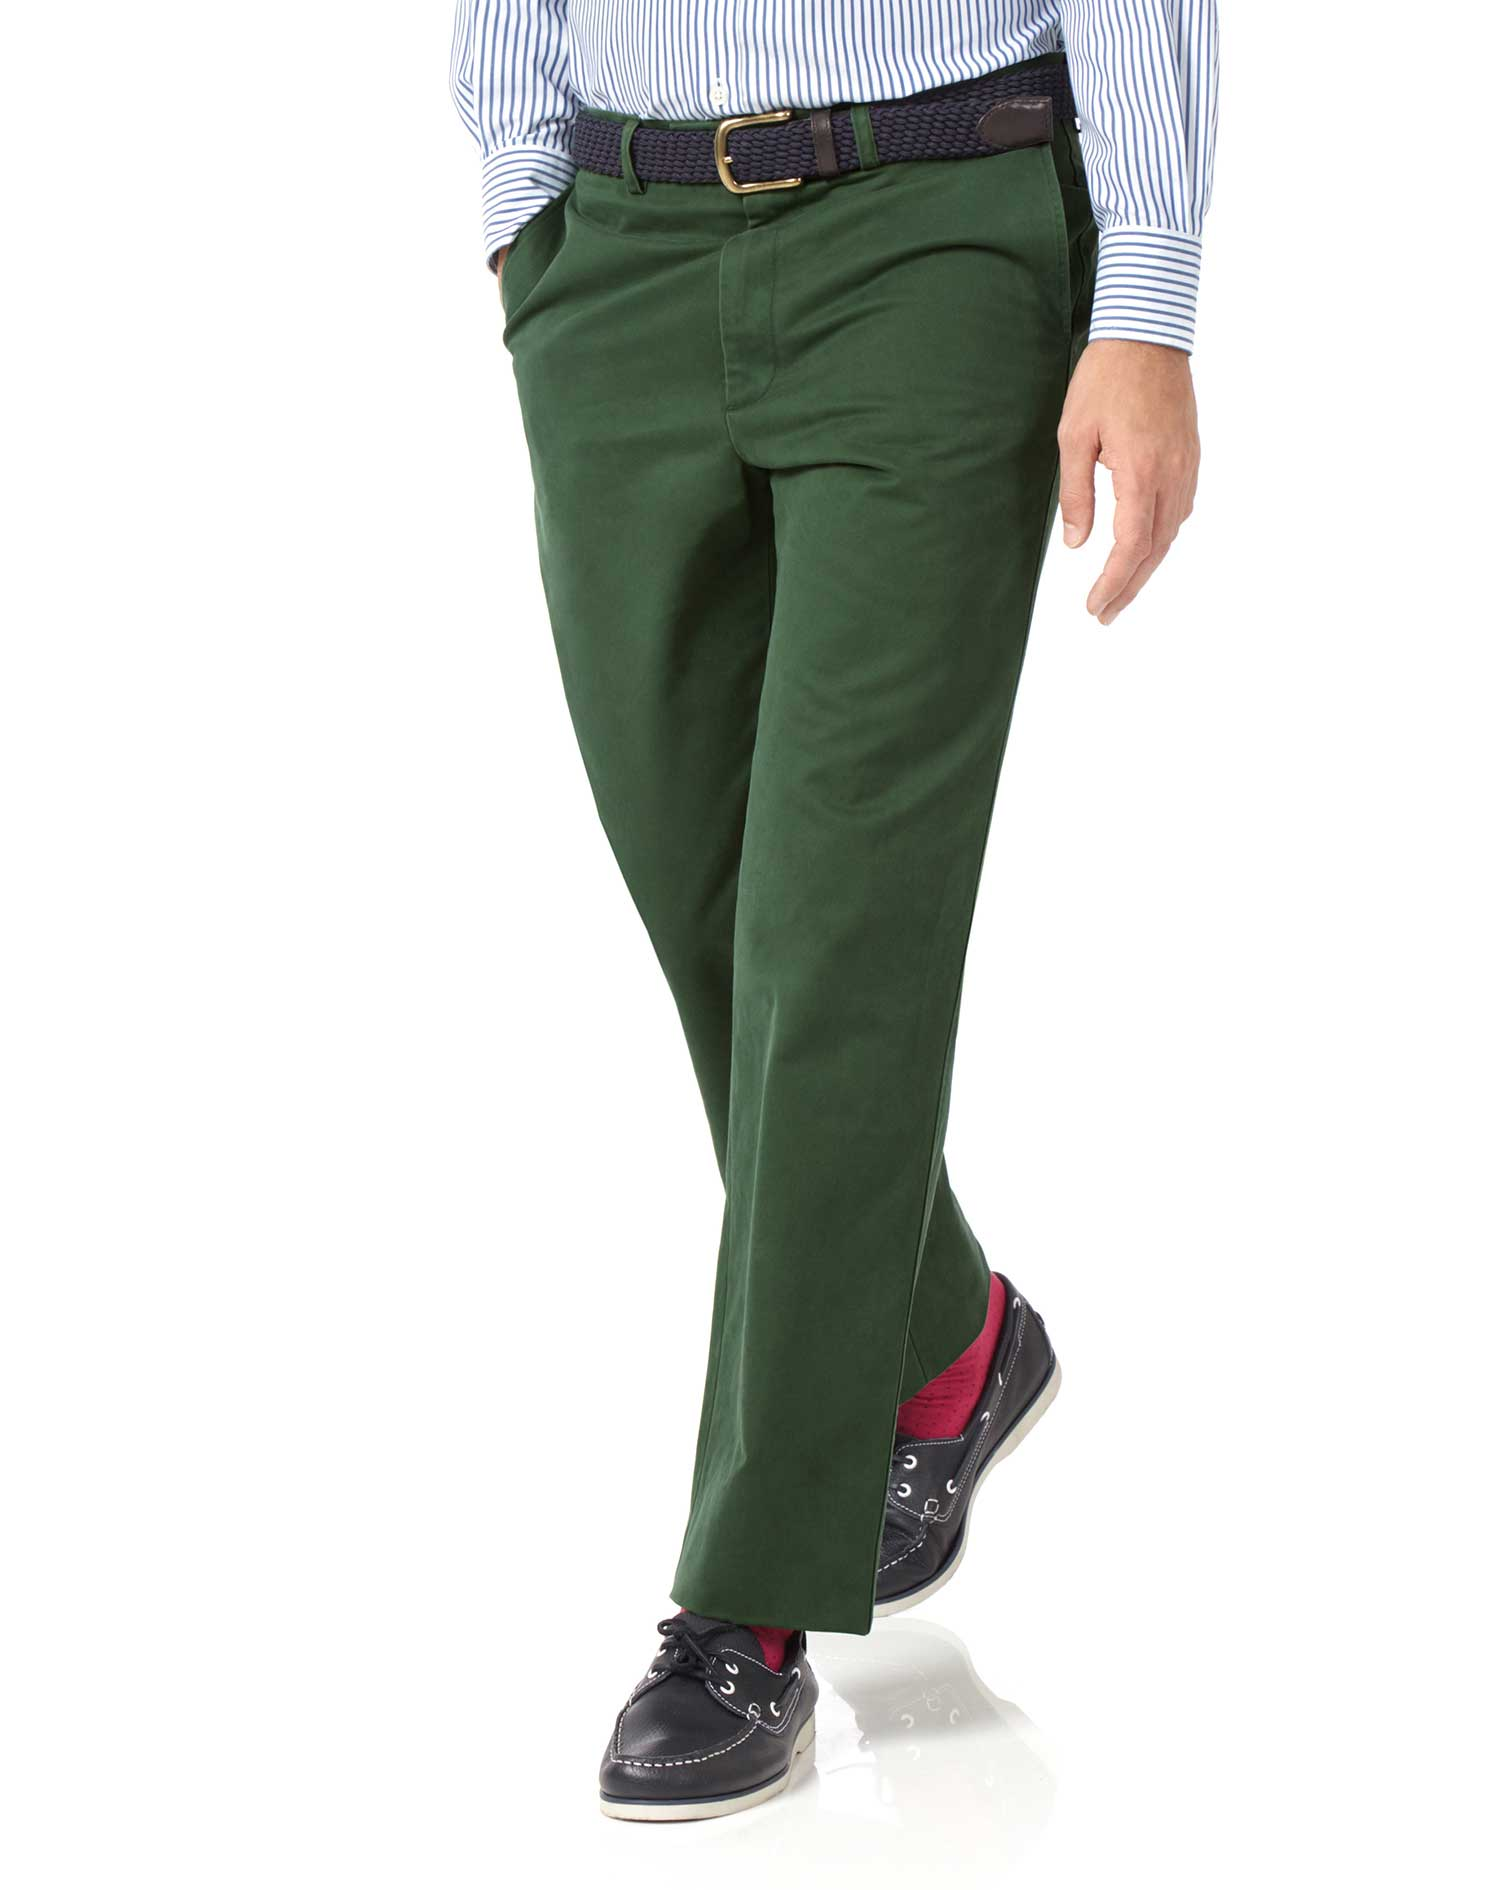 green classic fit flat front washed cotton chino pants size w42 l32 by charles tyrwhitt